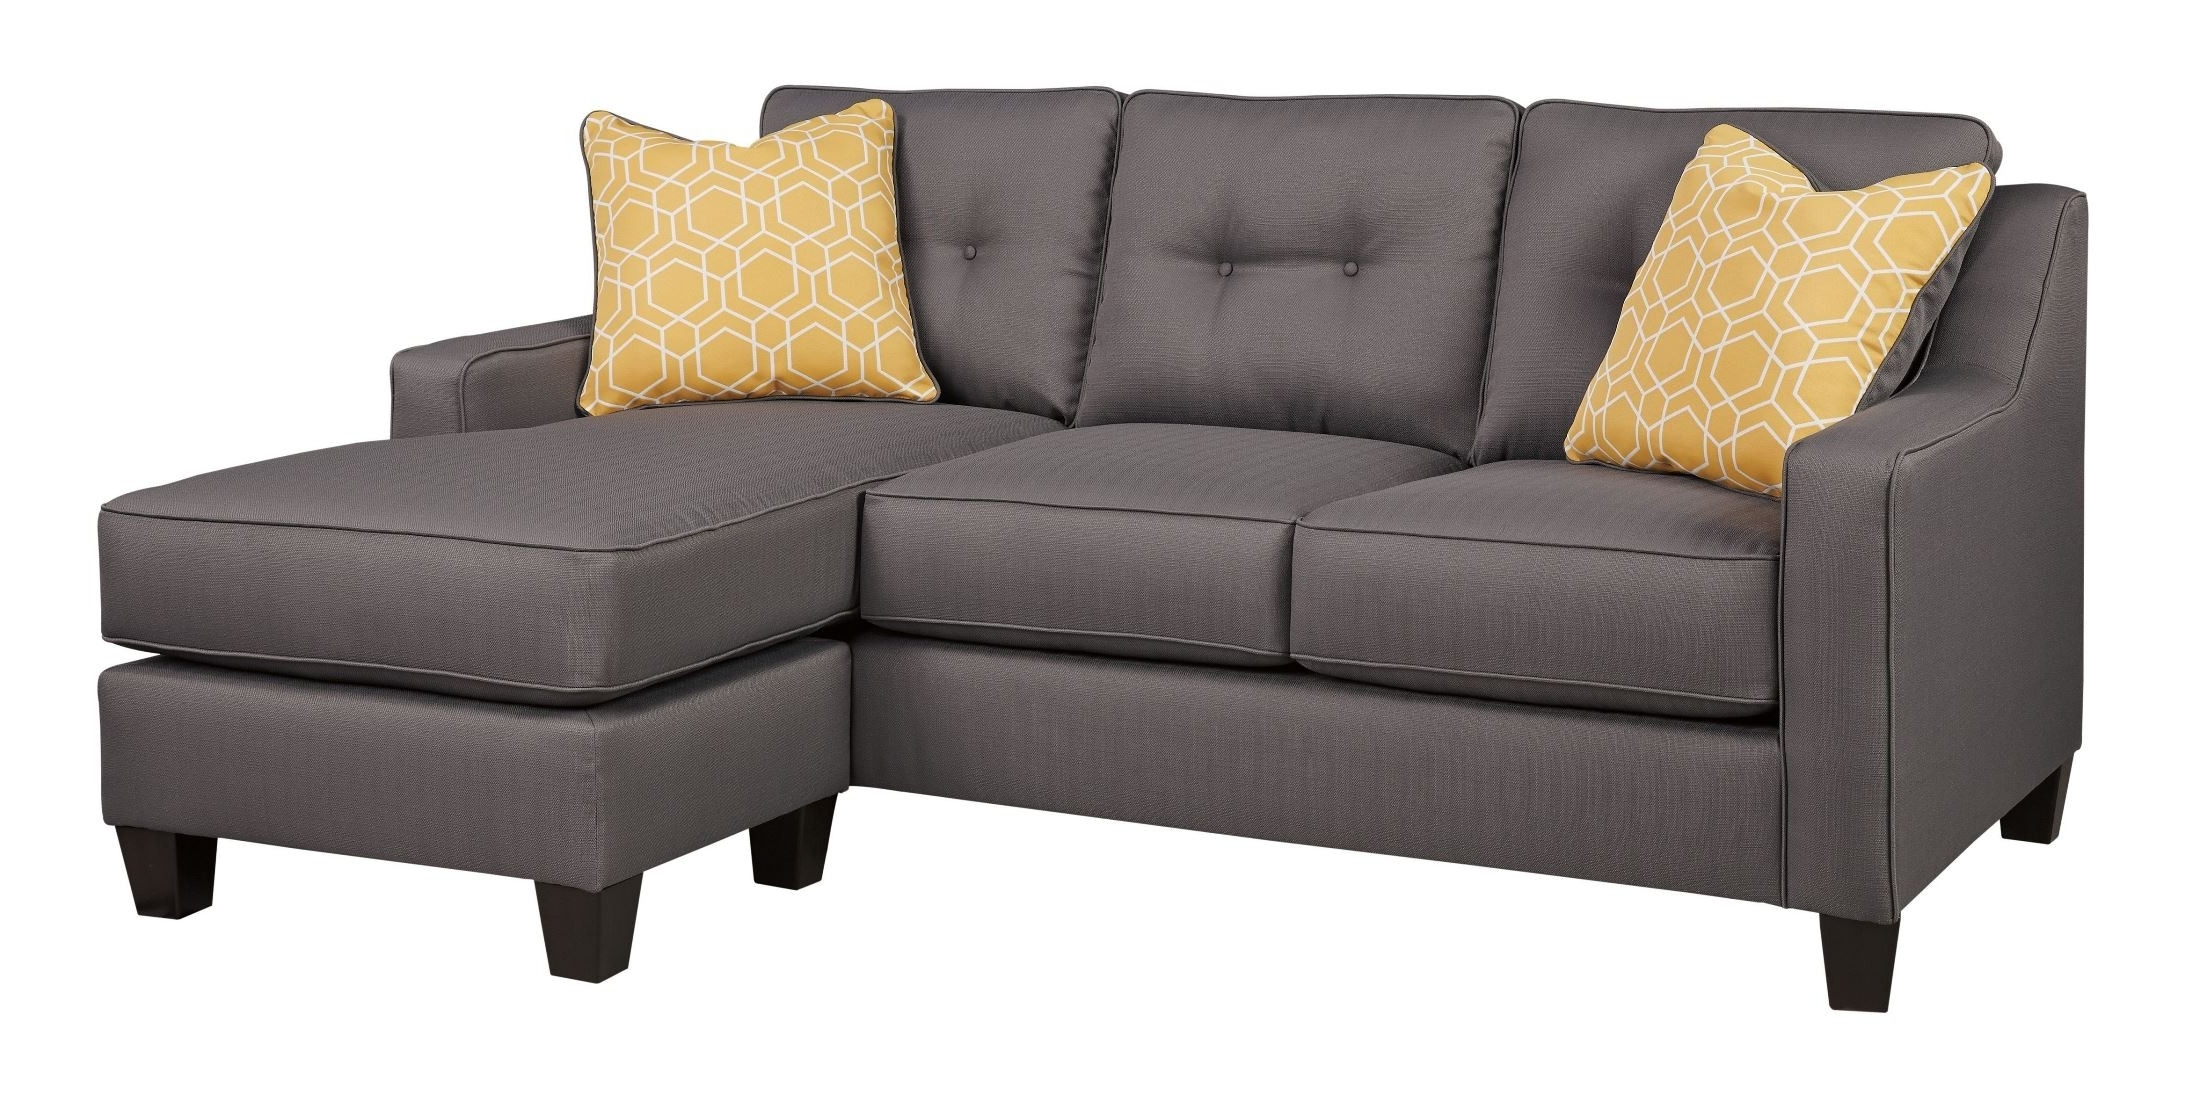 Sofa Chaise Sleepers With Trendy Signature Designashley Aldie Nuvella Gray Queen Sofa Chaise (View 13 of 15)